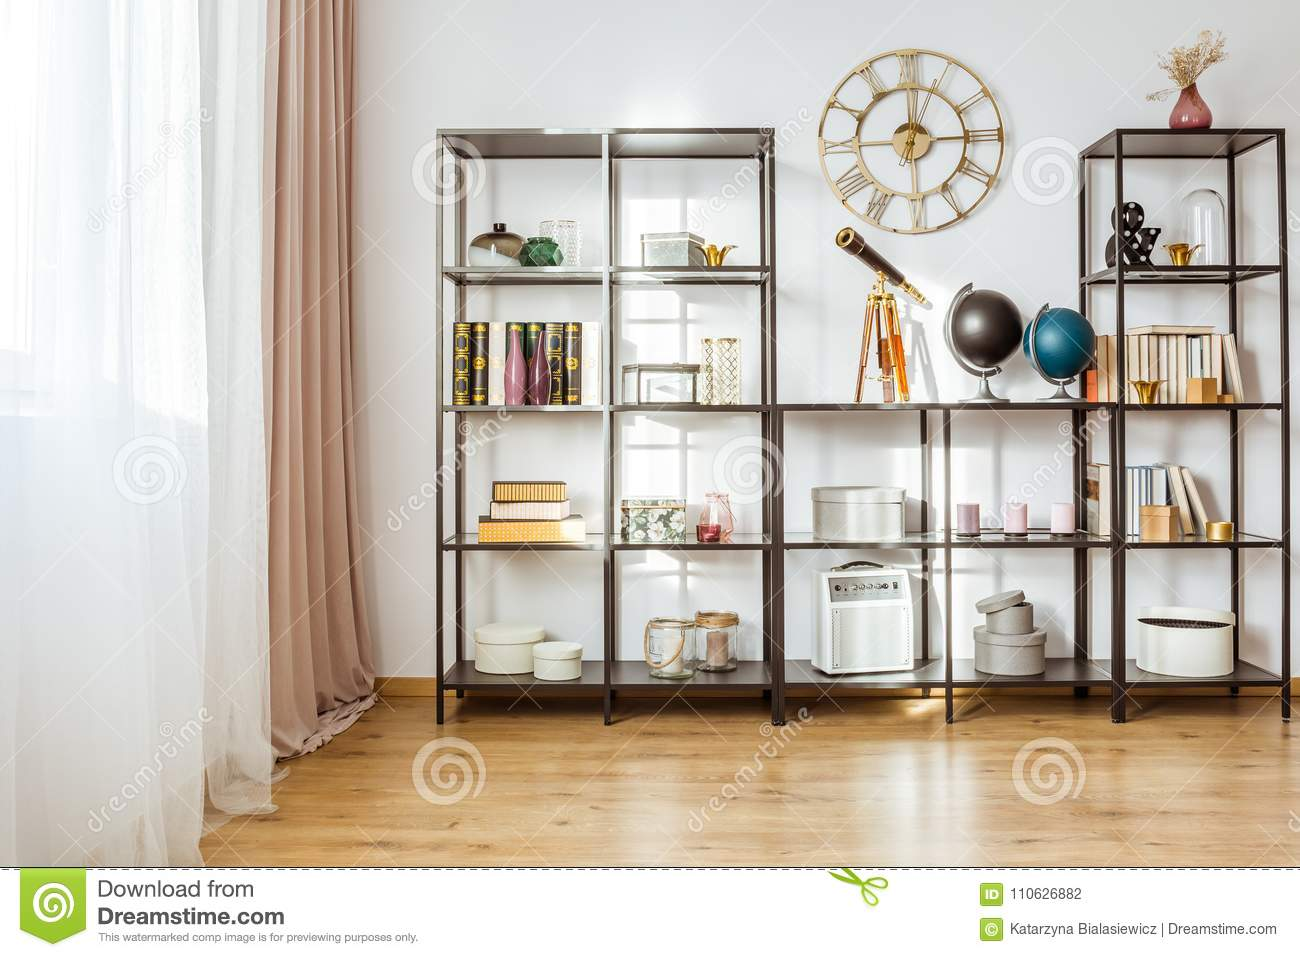 Classic Living Room With Clock Stock Photo - Image of rack, drapes ...